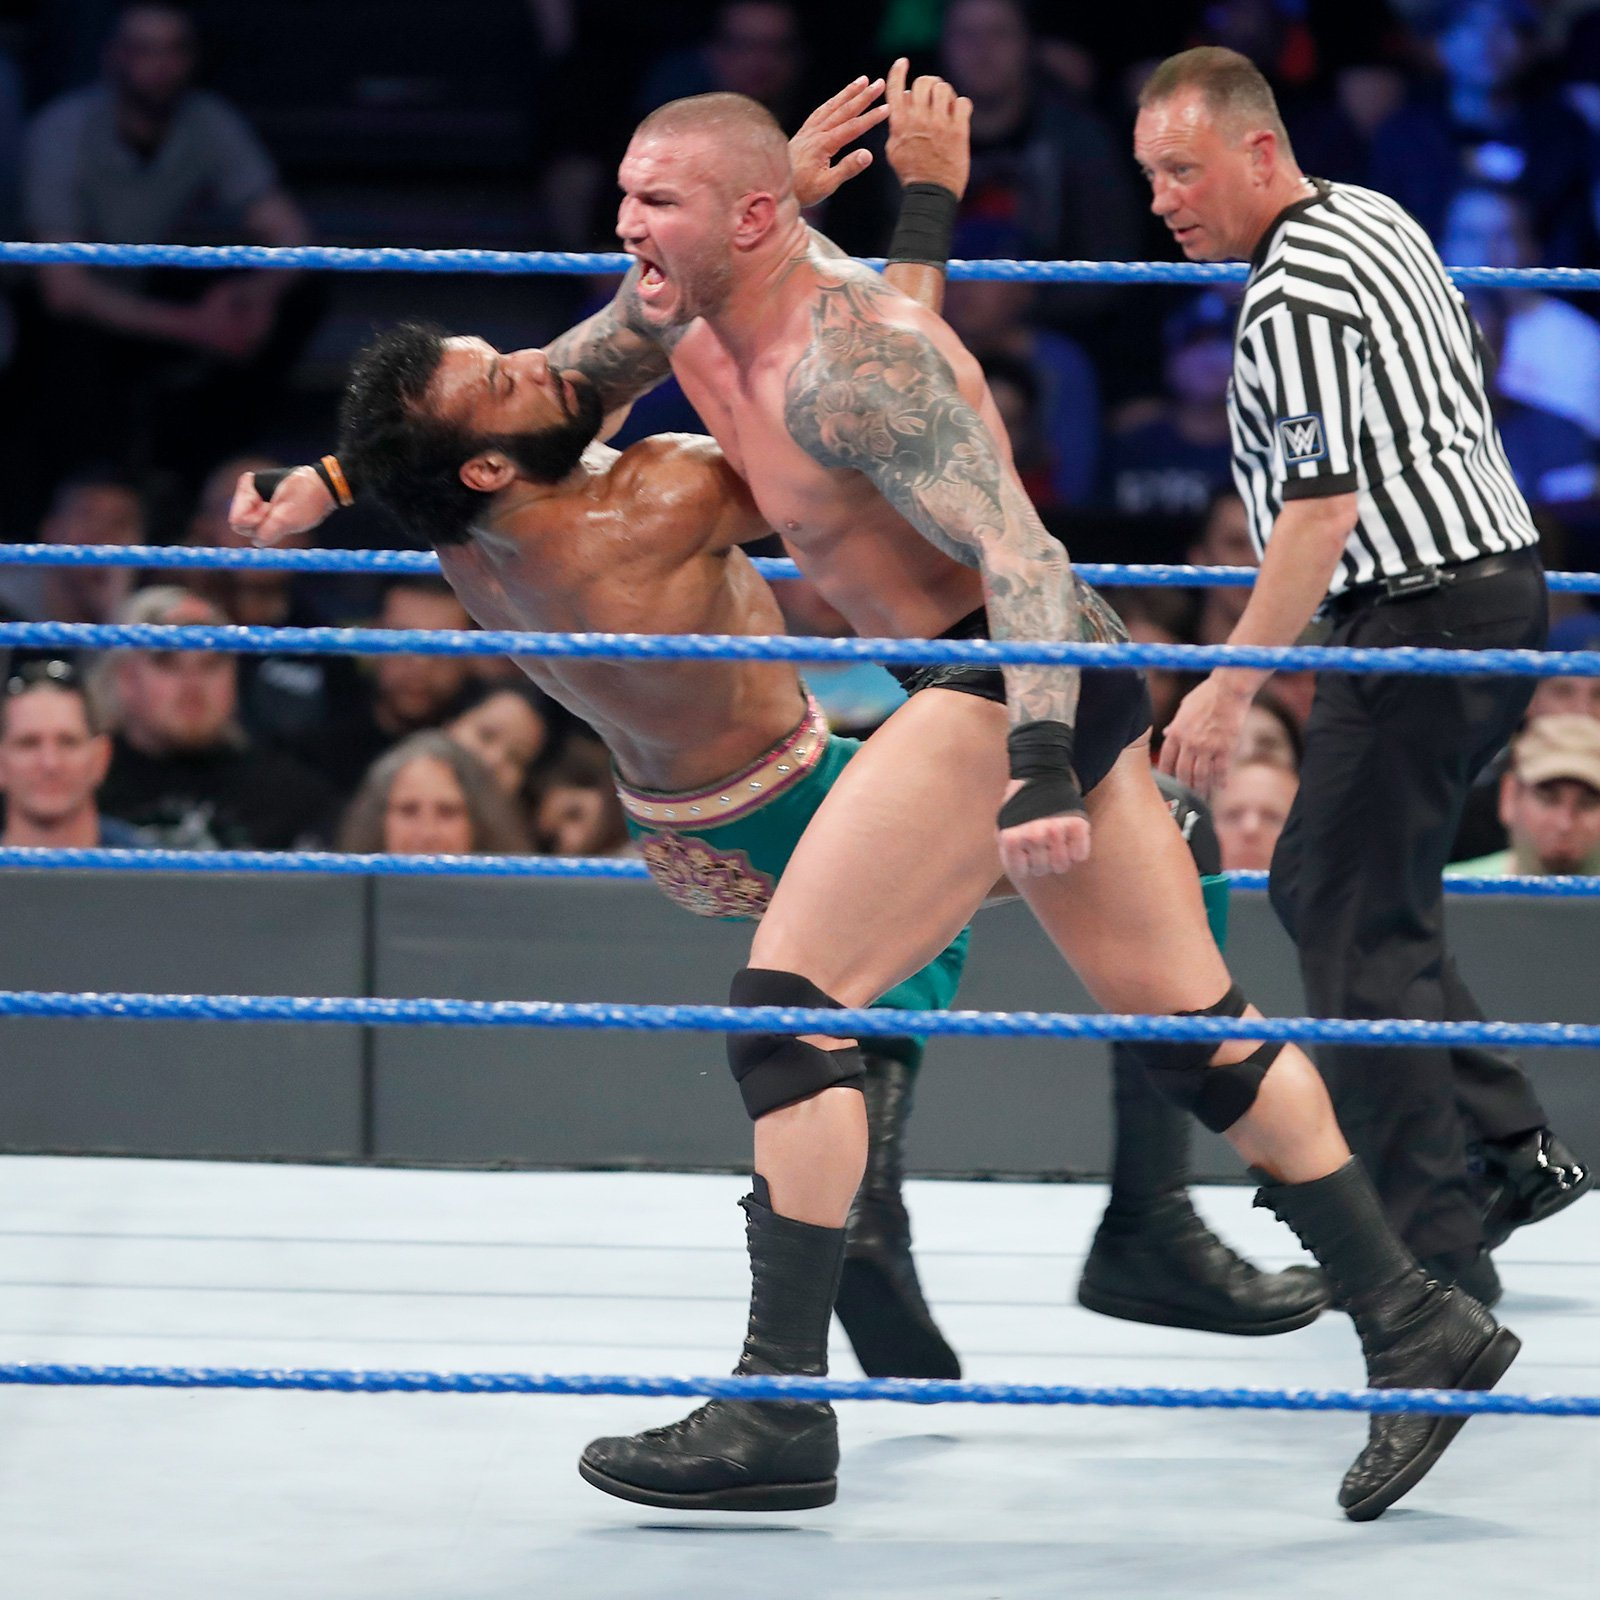 WWE's Apex Predator gets fired up and takes down his challenger.